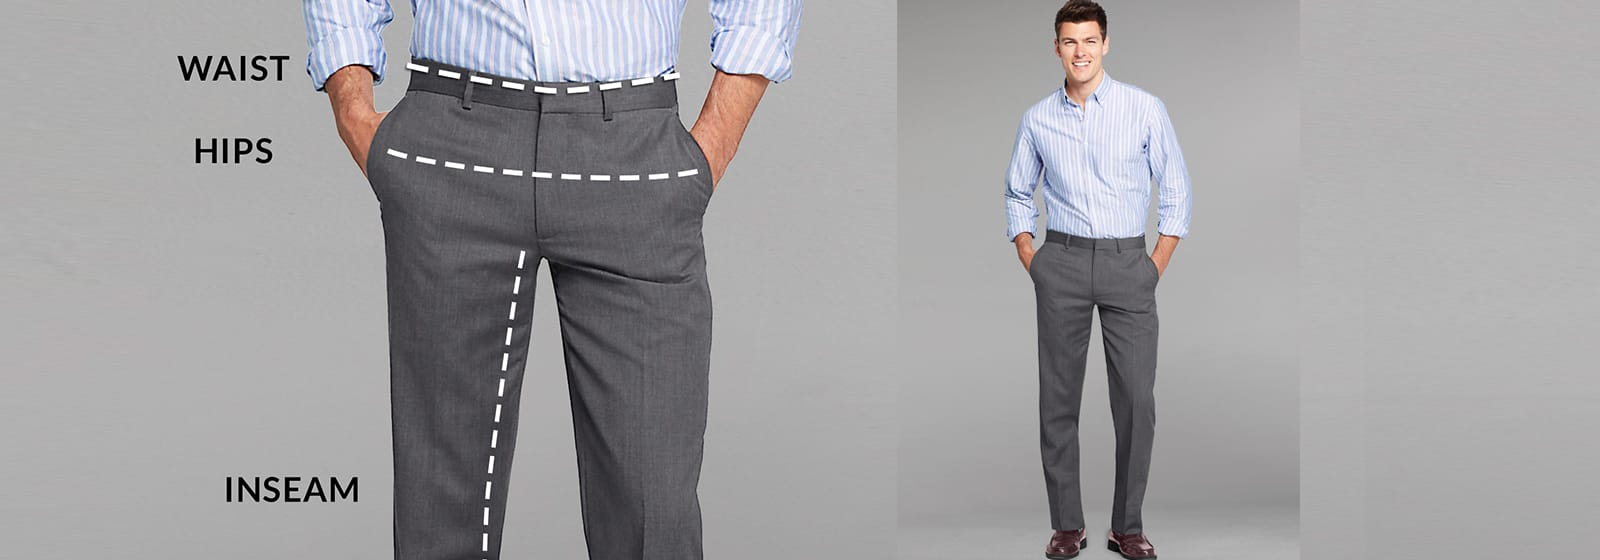 How to Measure Pants for Men